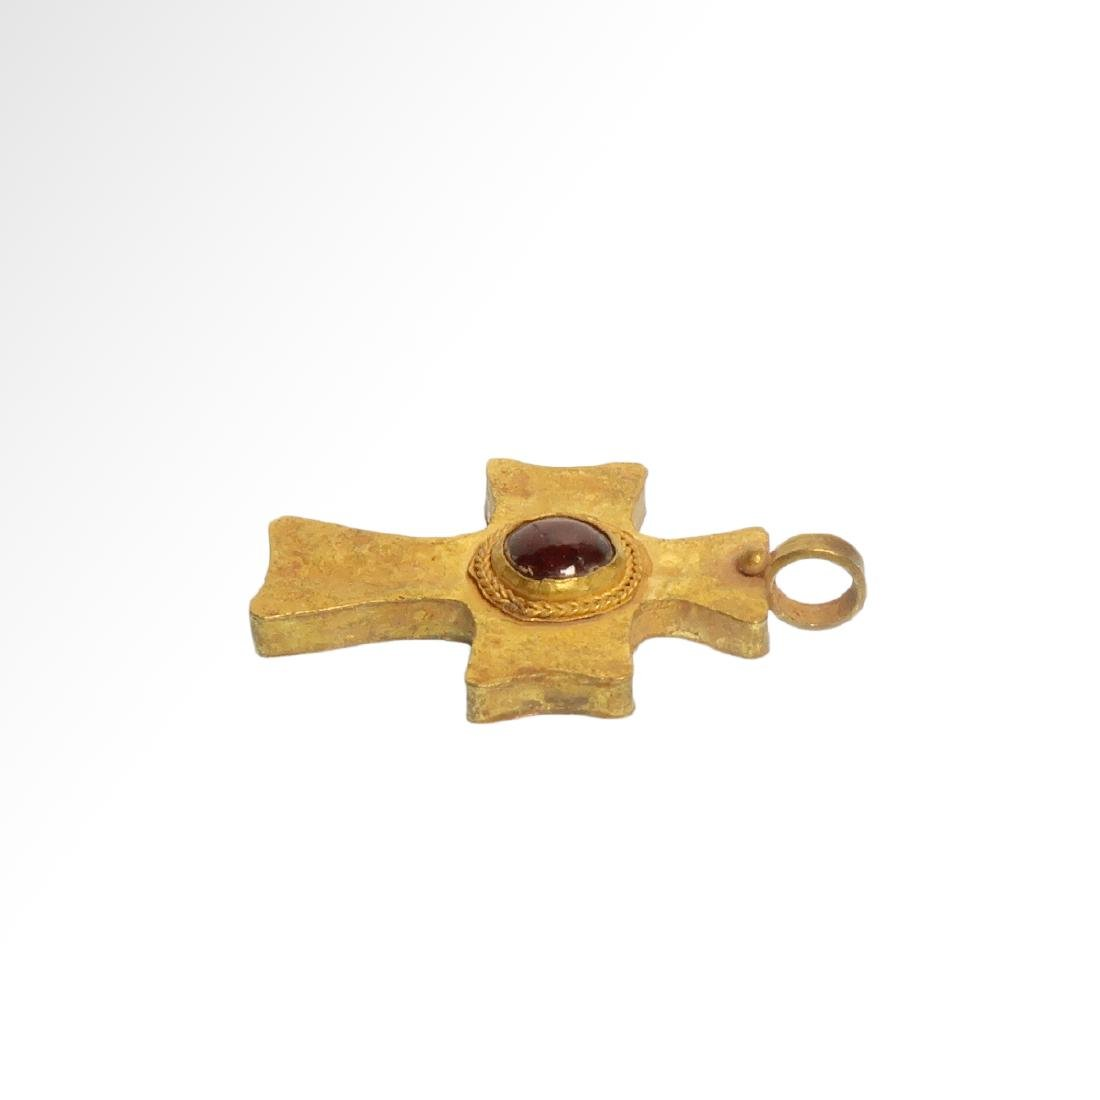 Byzantine Gold and Garnet Cross, 7th-9th Century A.D. - 4